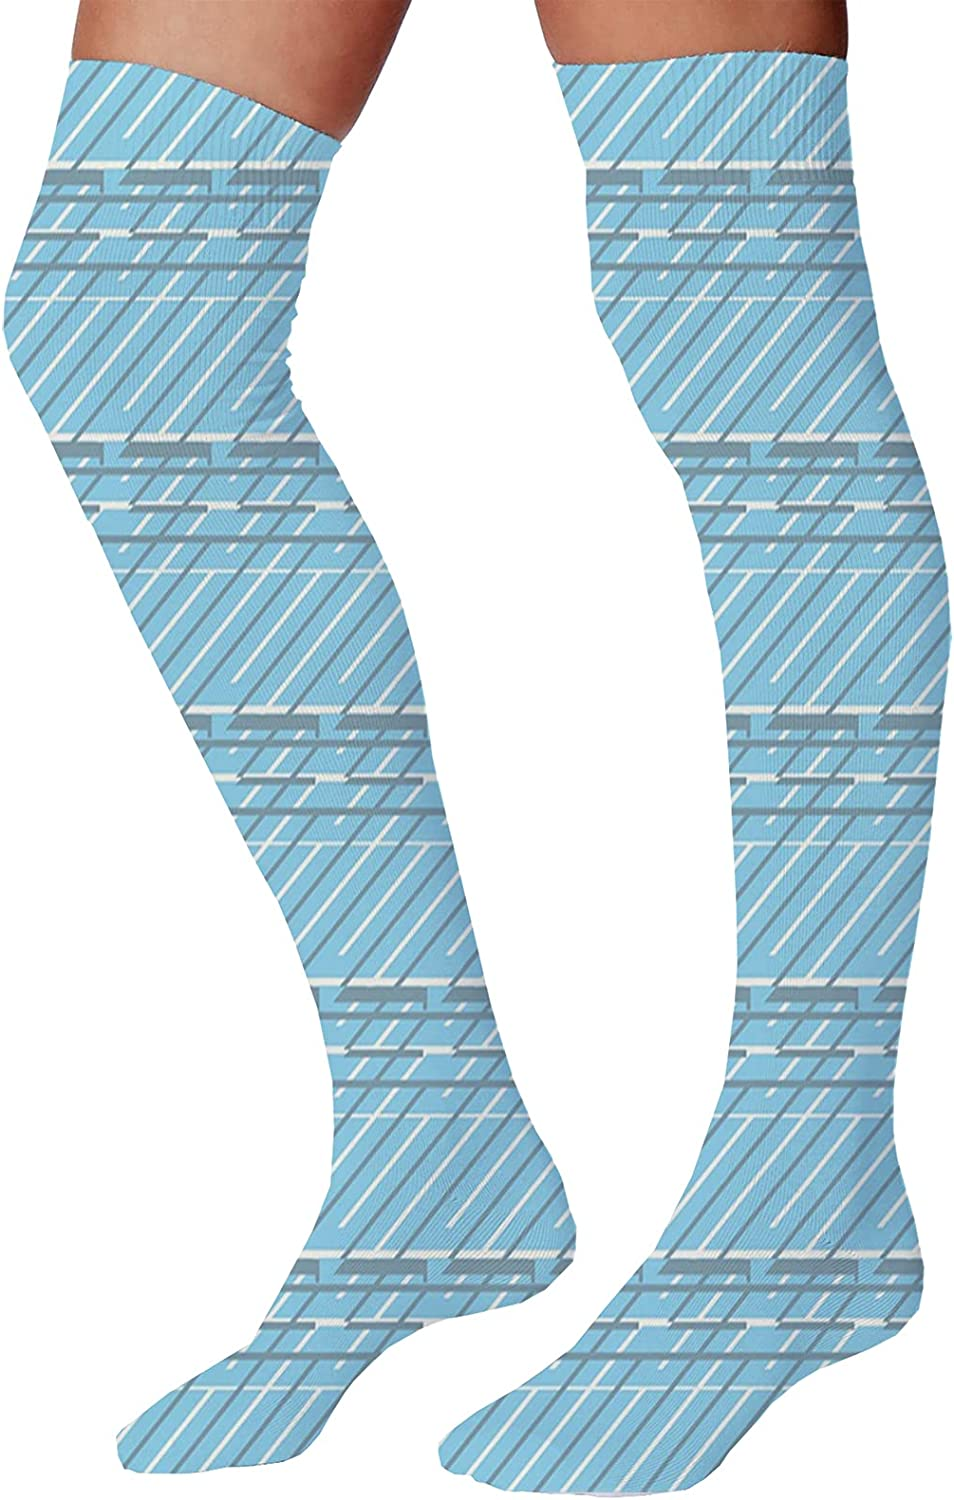 Men's and Women's Fun Socks,Ornamental Crystals of Ice Freezing Weather in January Cold Artistic Abstract